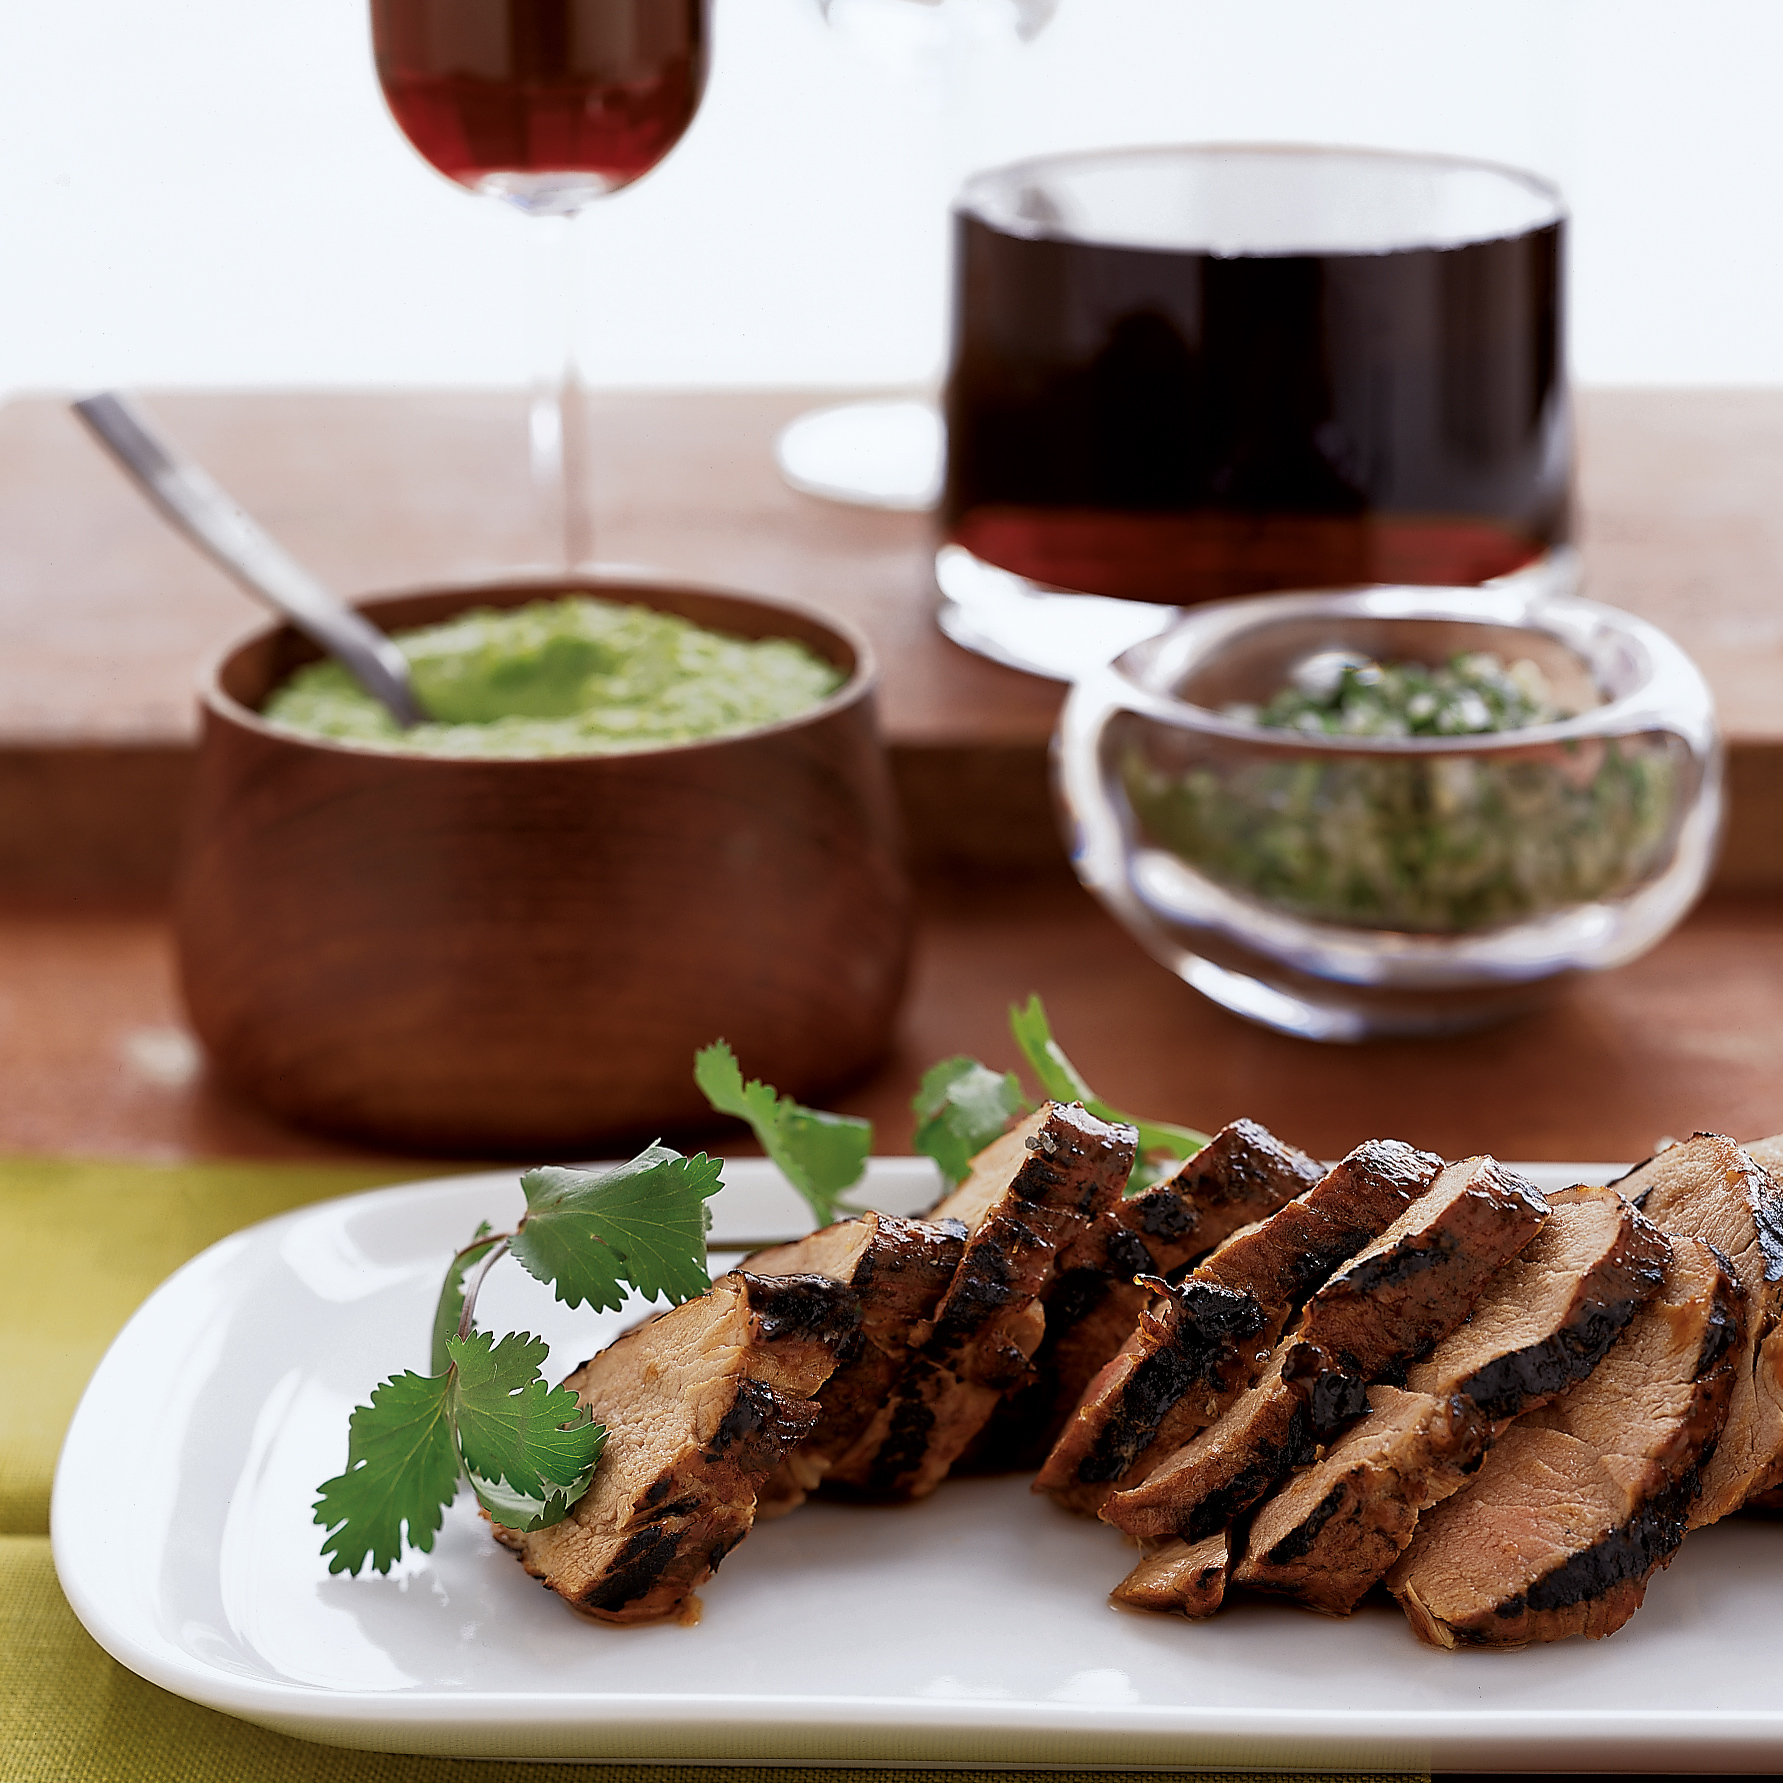 Guava-Glazed Pork Tenderloin with Cilantro-Jalapeño Salsa